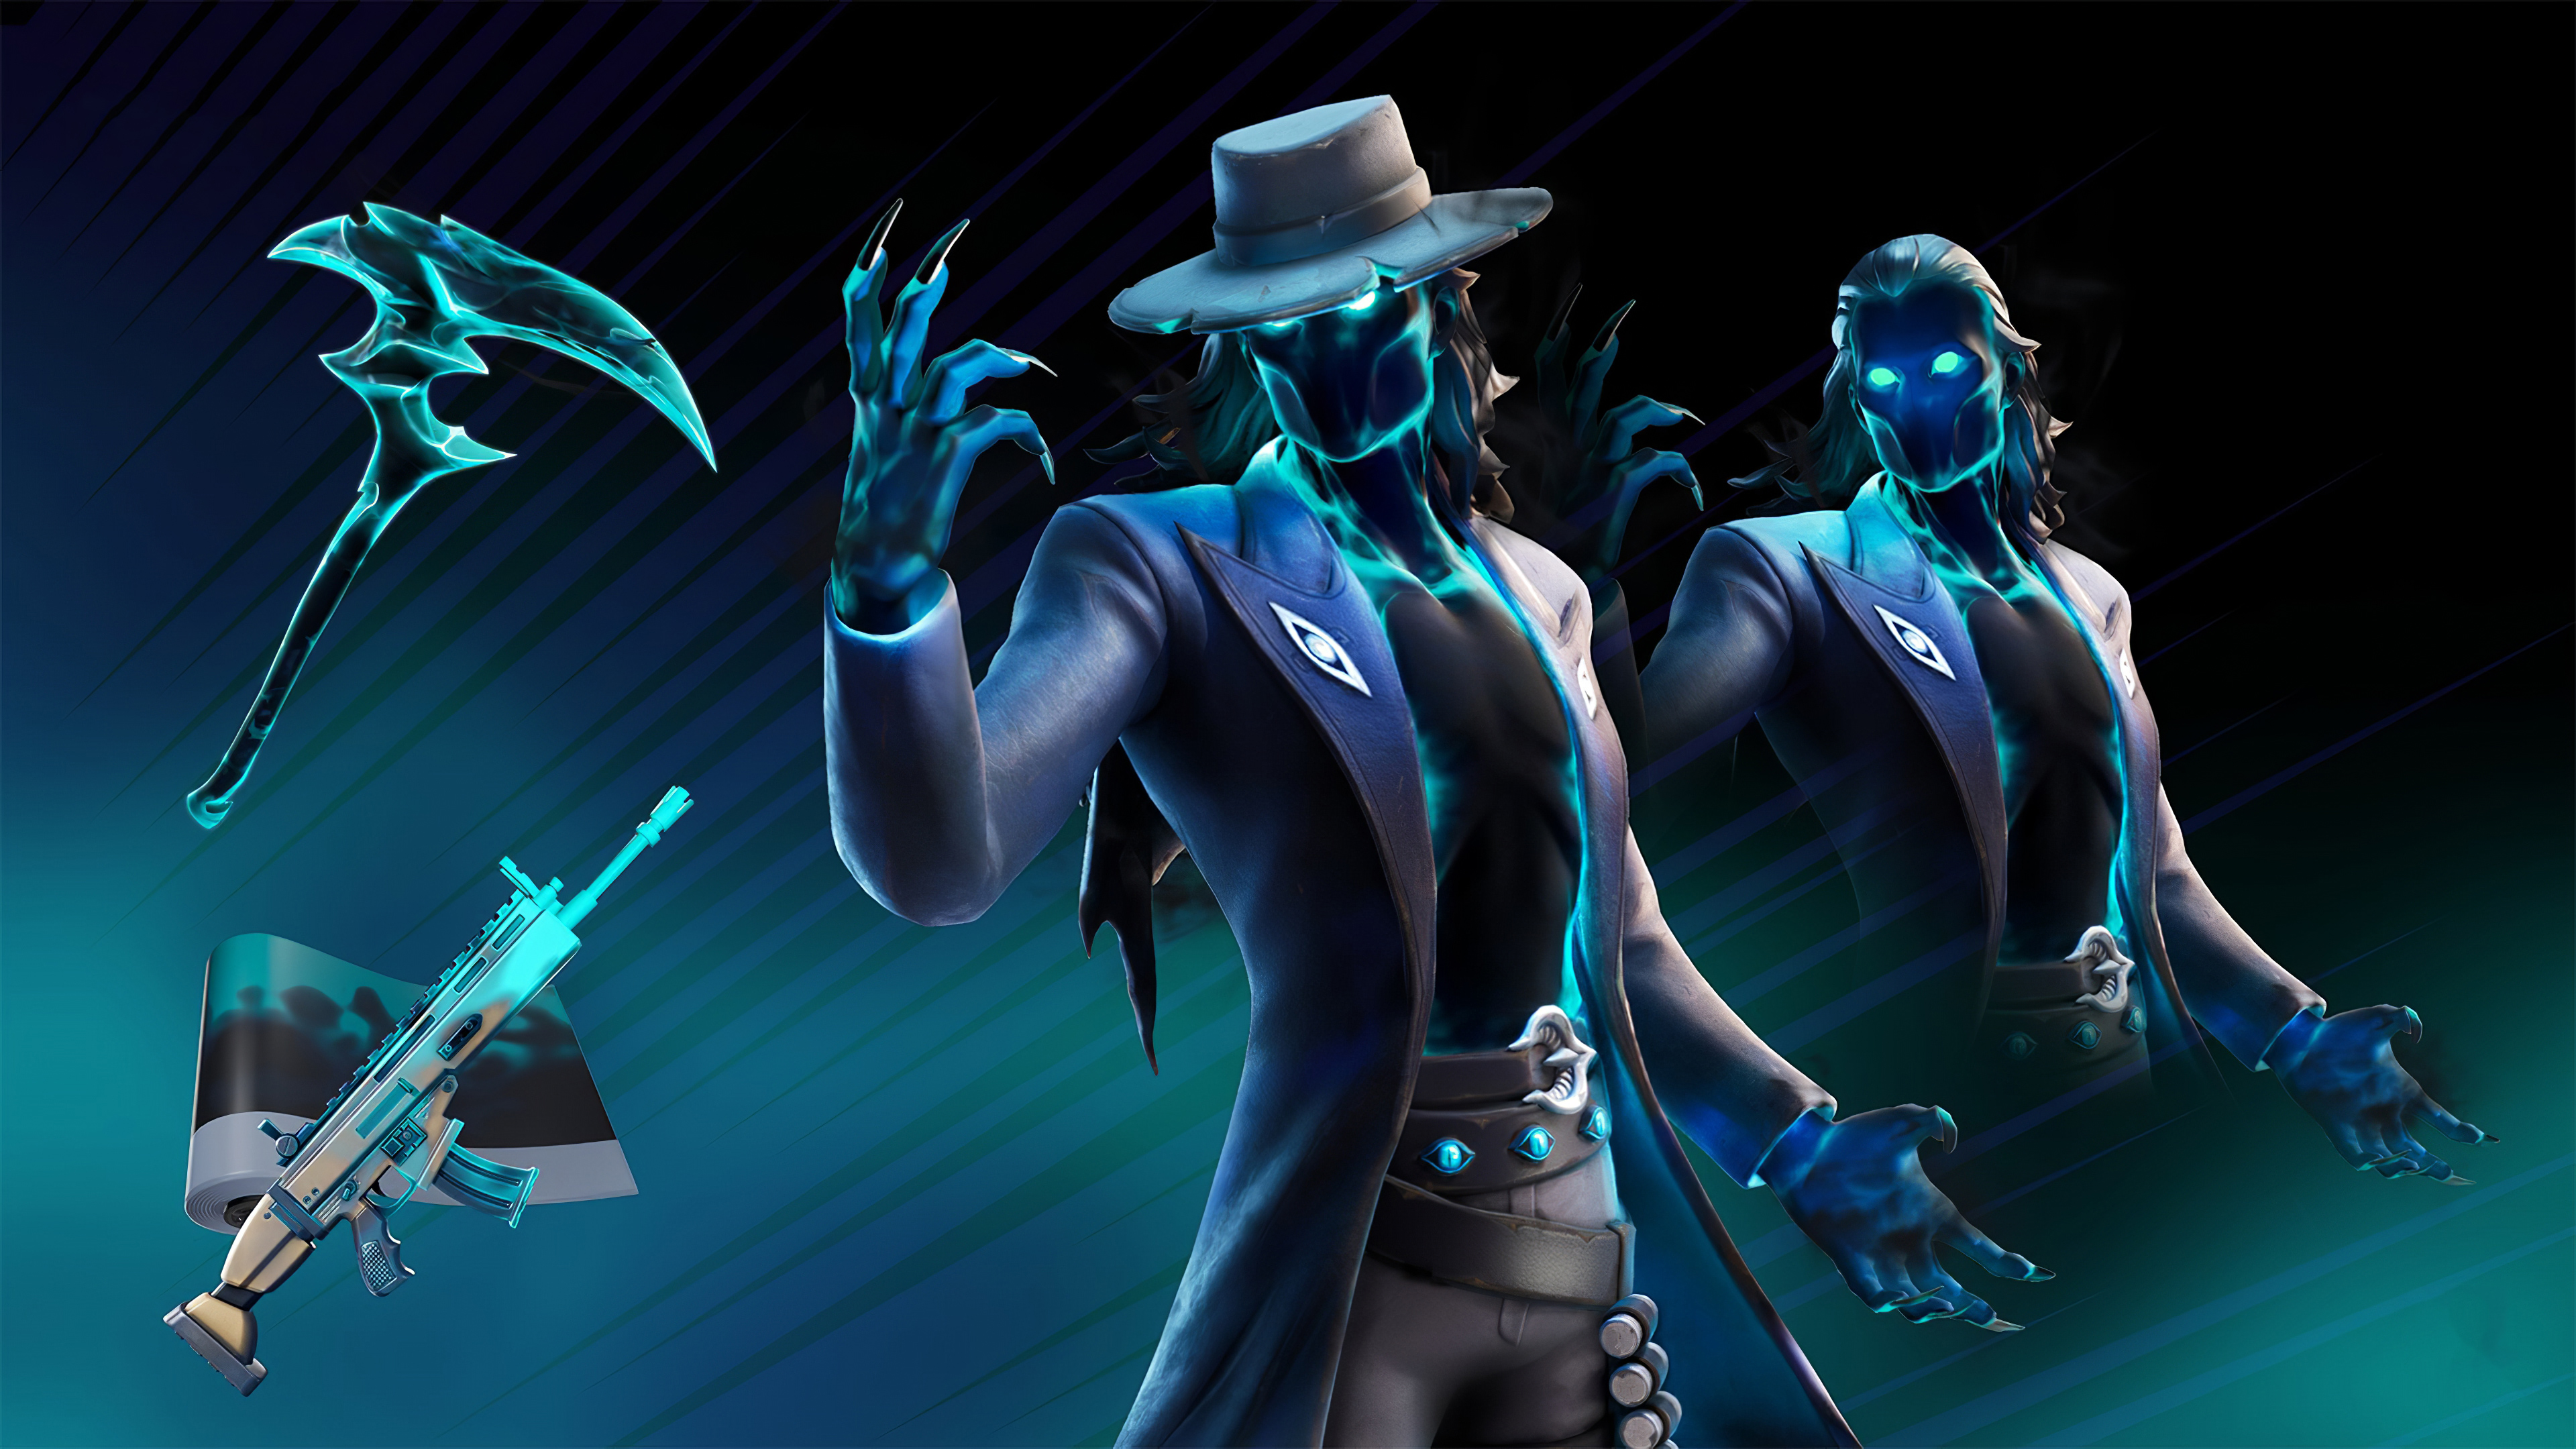 2020 Fortnite New Skin Hd Games 4k Wallpapers Images Backgrounds Photos And Pictures